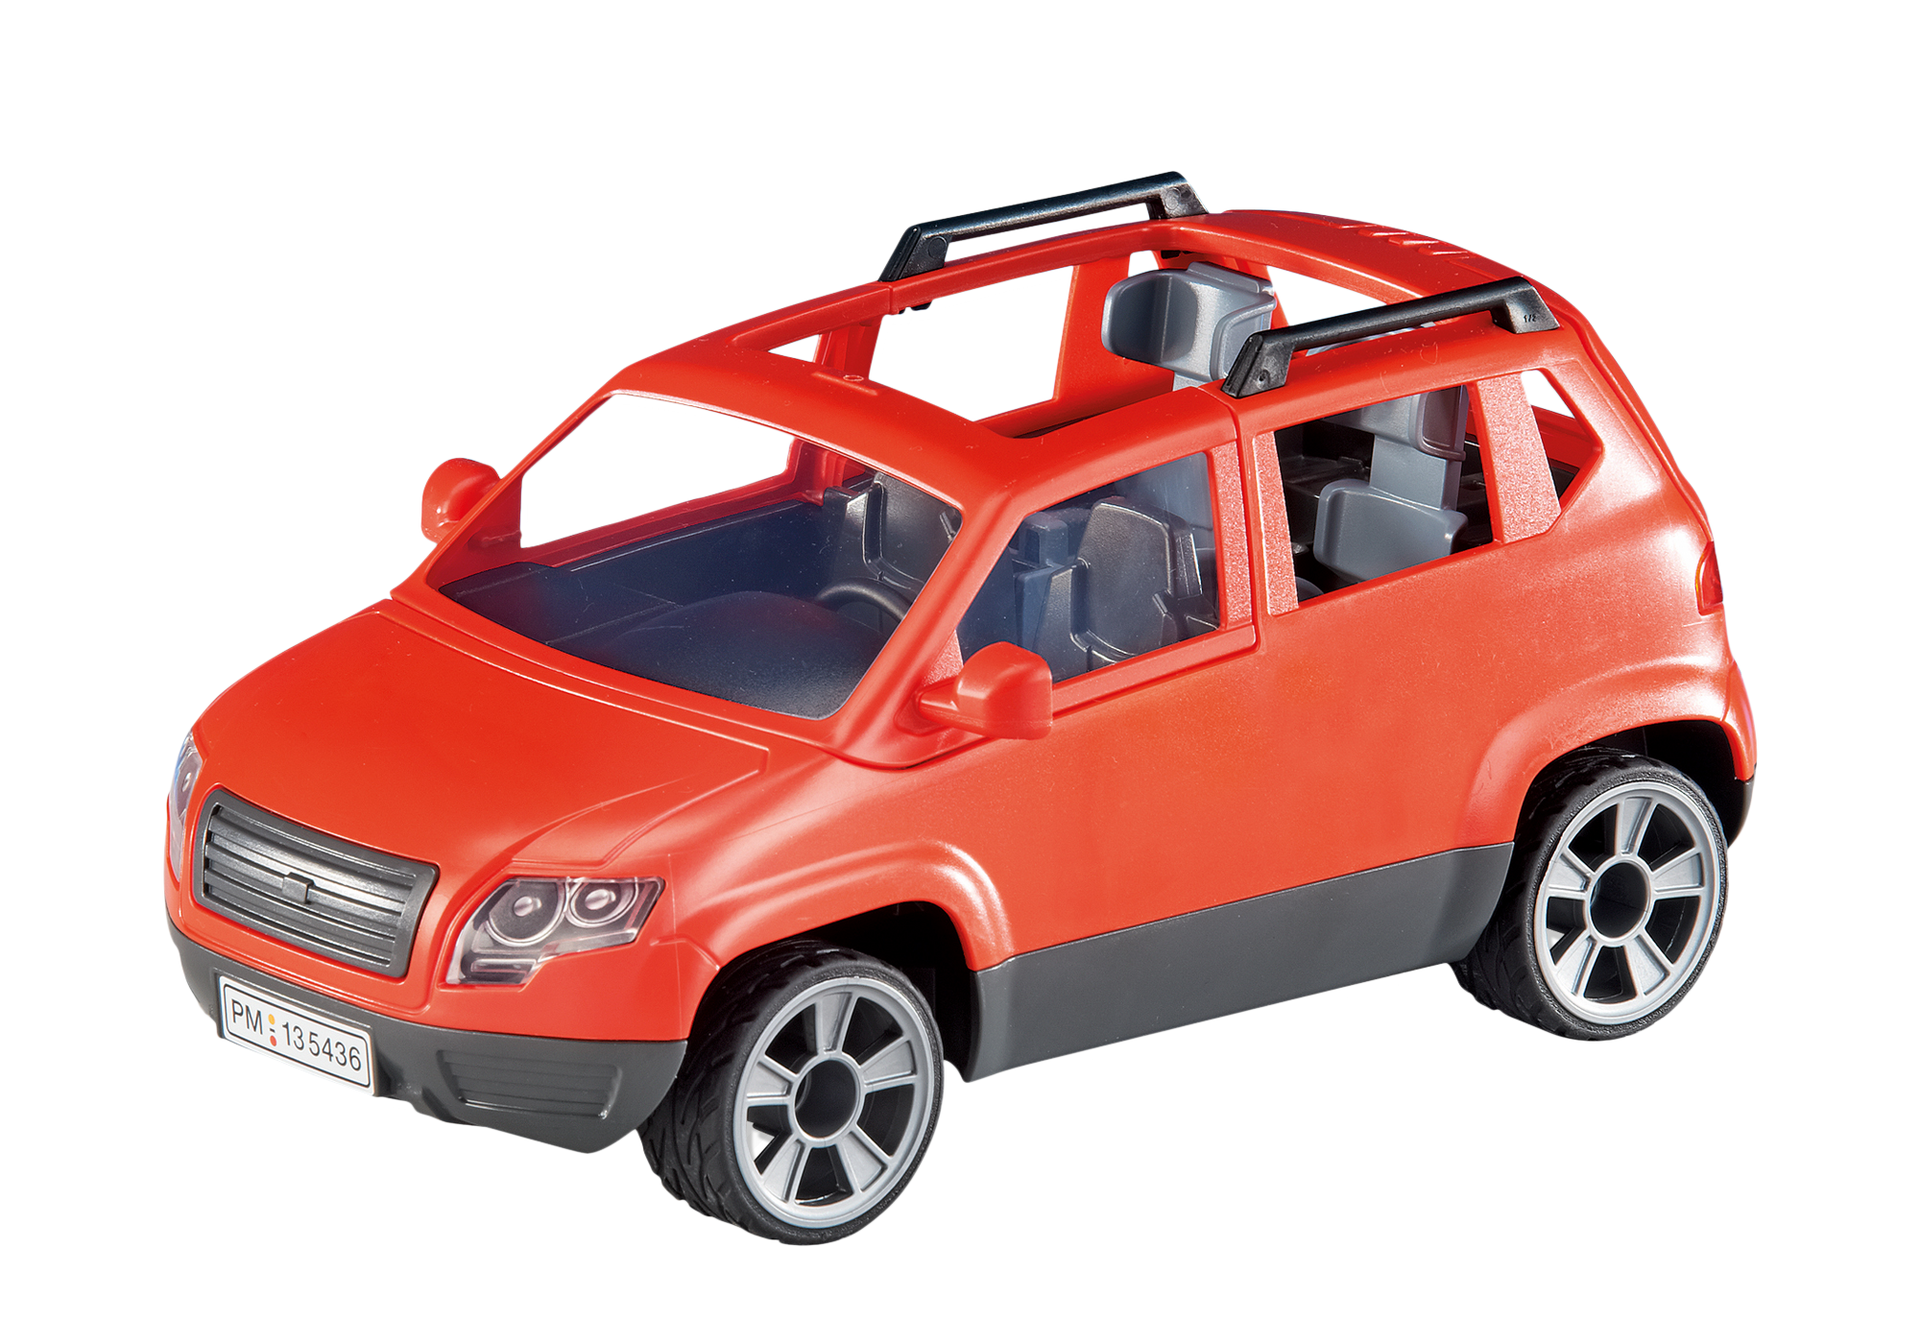 voiture familiale rouge 6507 playmobil france. Black Bedroom Furniture Sets. Home Design Ideas